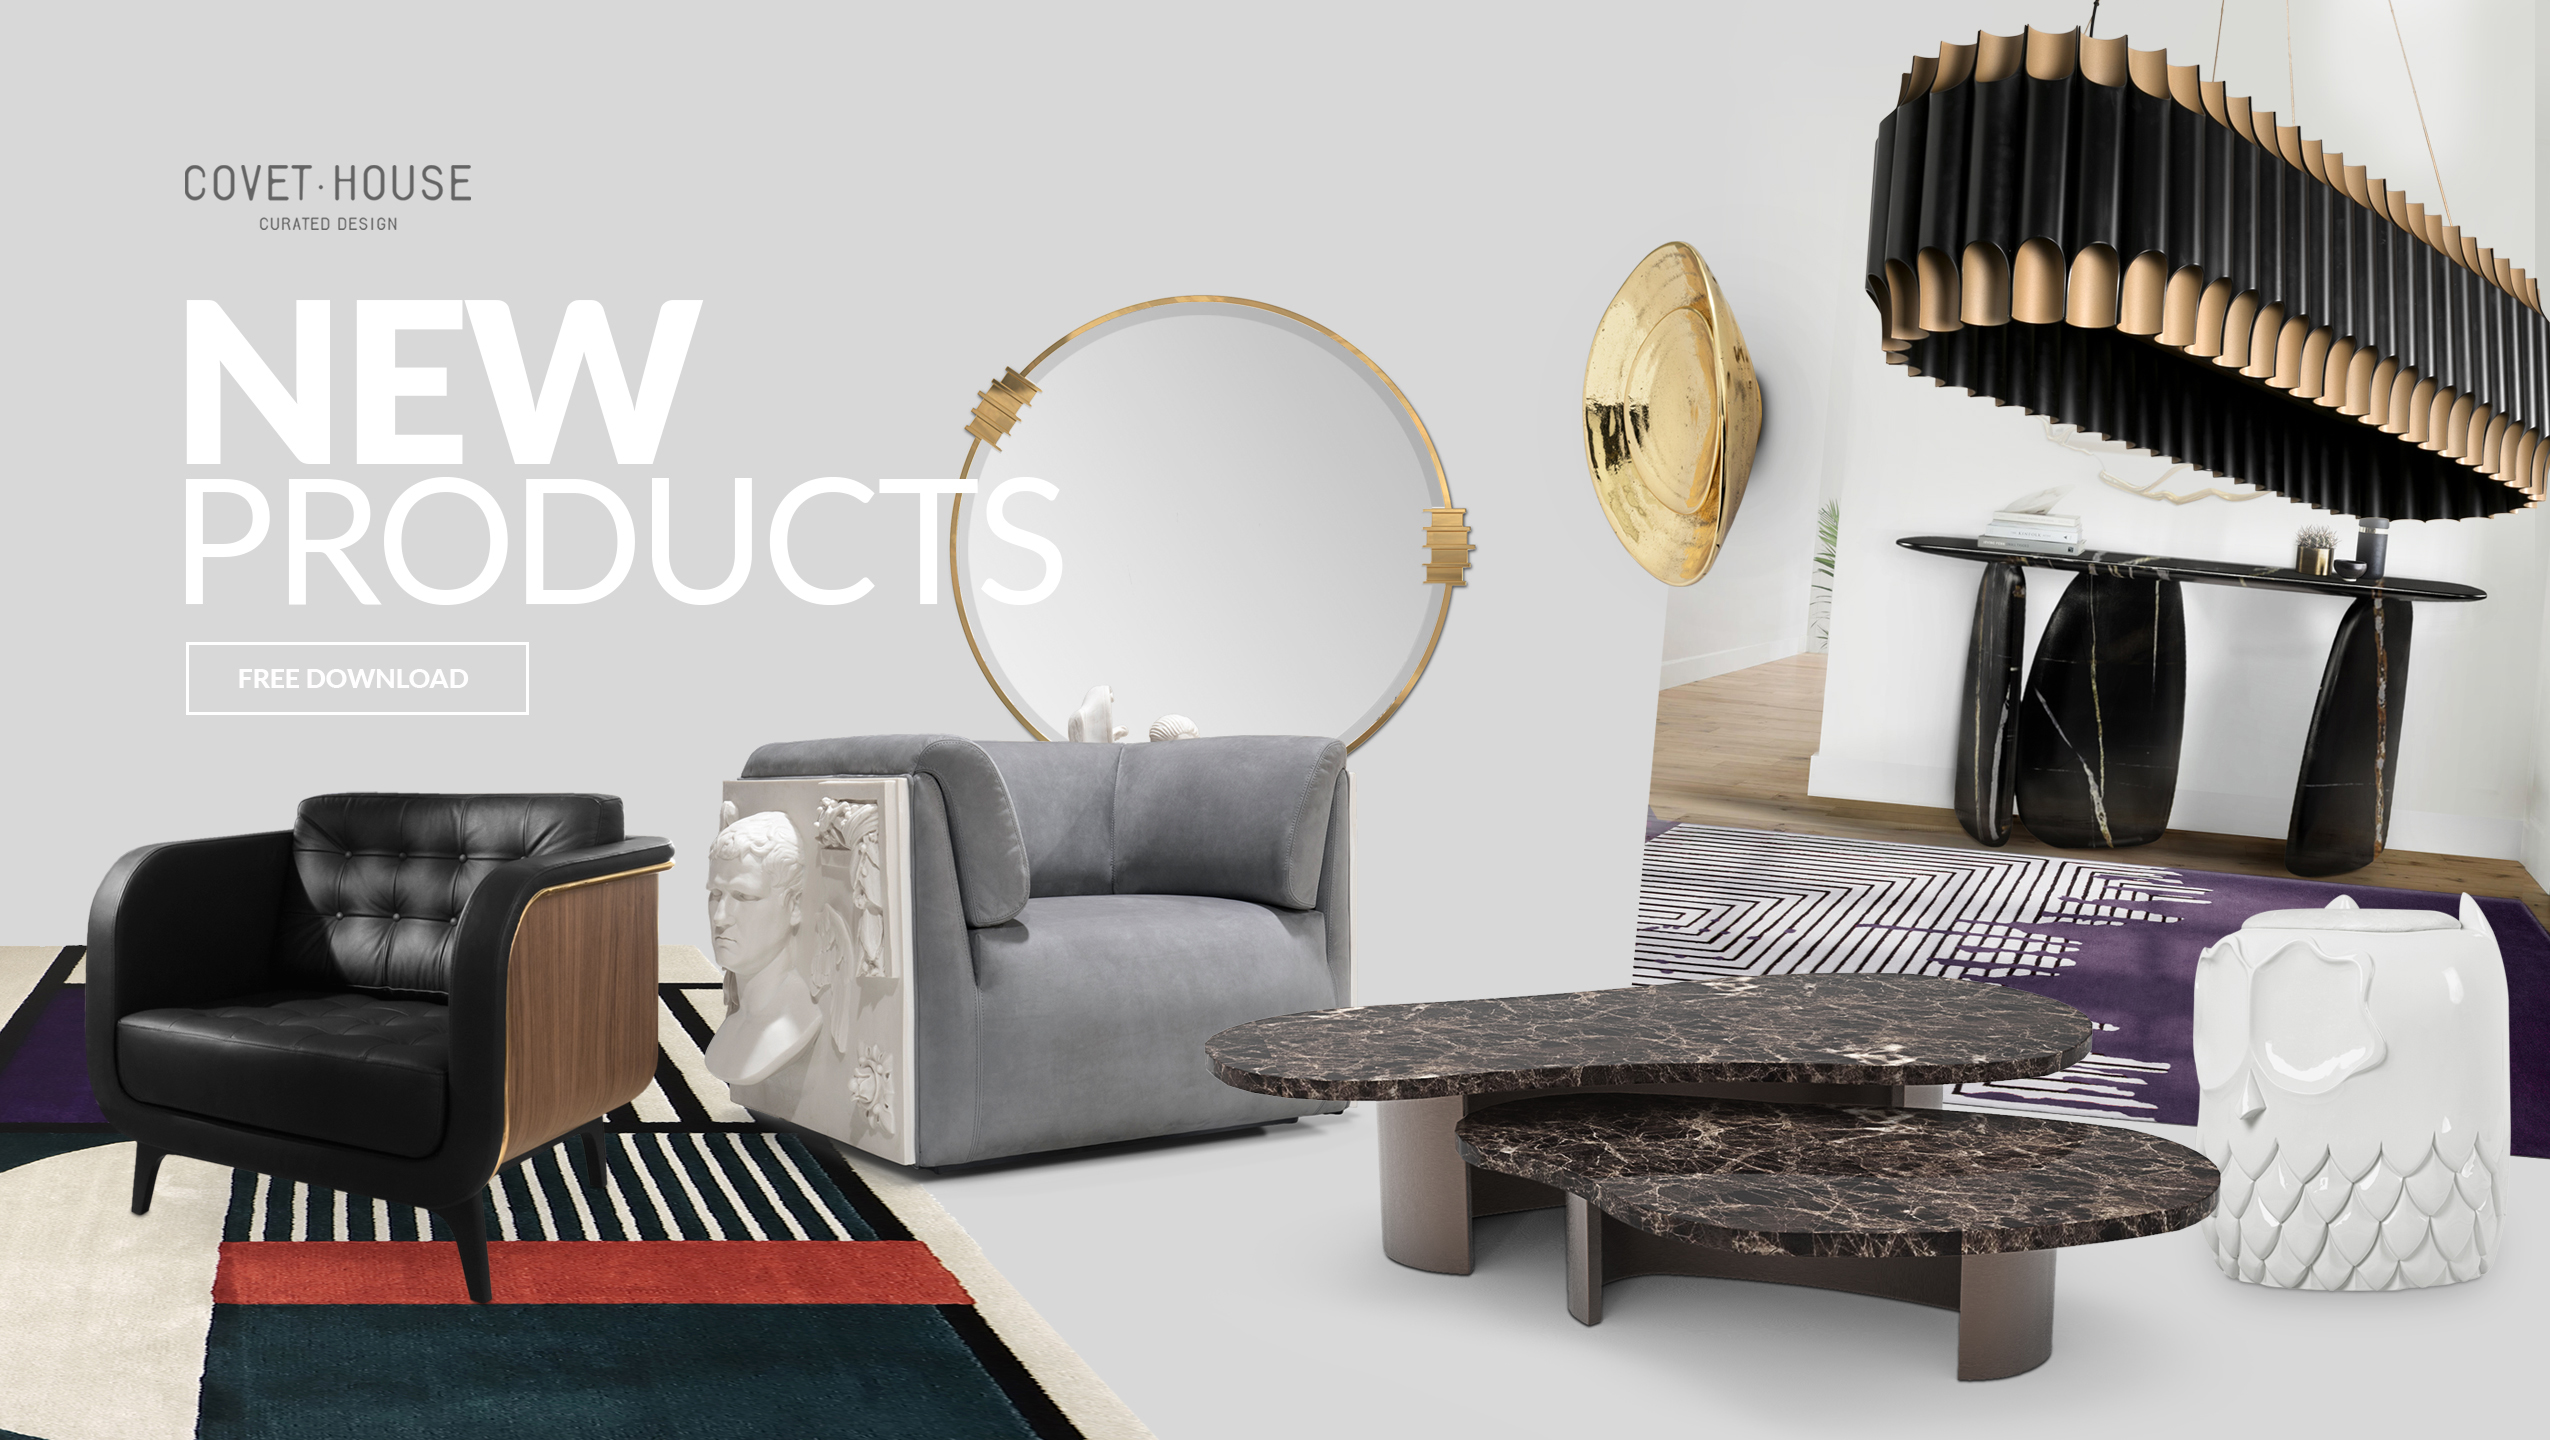 New Products 2020 maison et objet 2020 Free Ebook Presenting The New Products From Maison Et Objet 2020 newproducts cta1